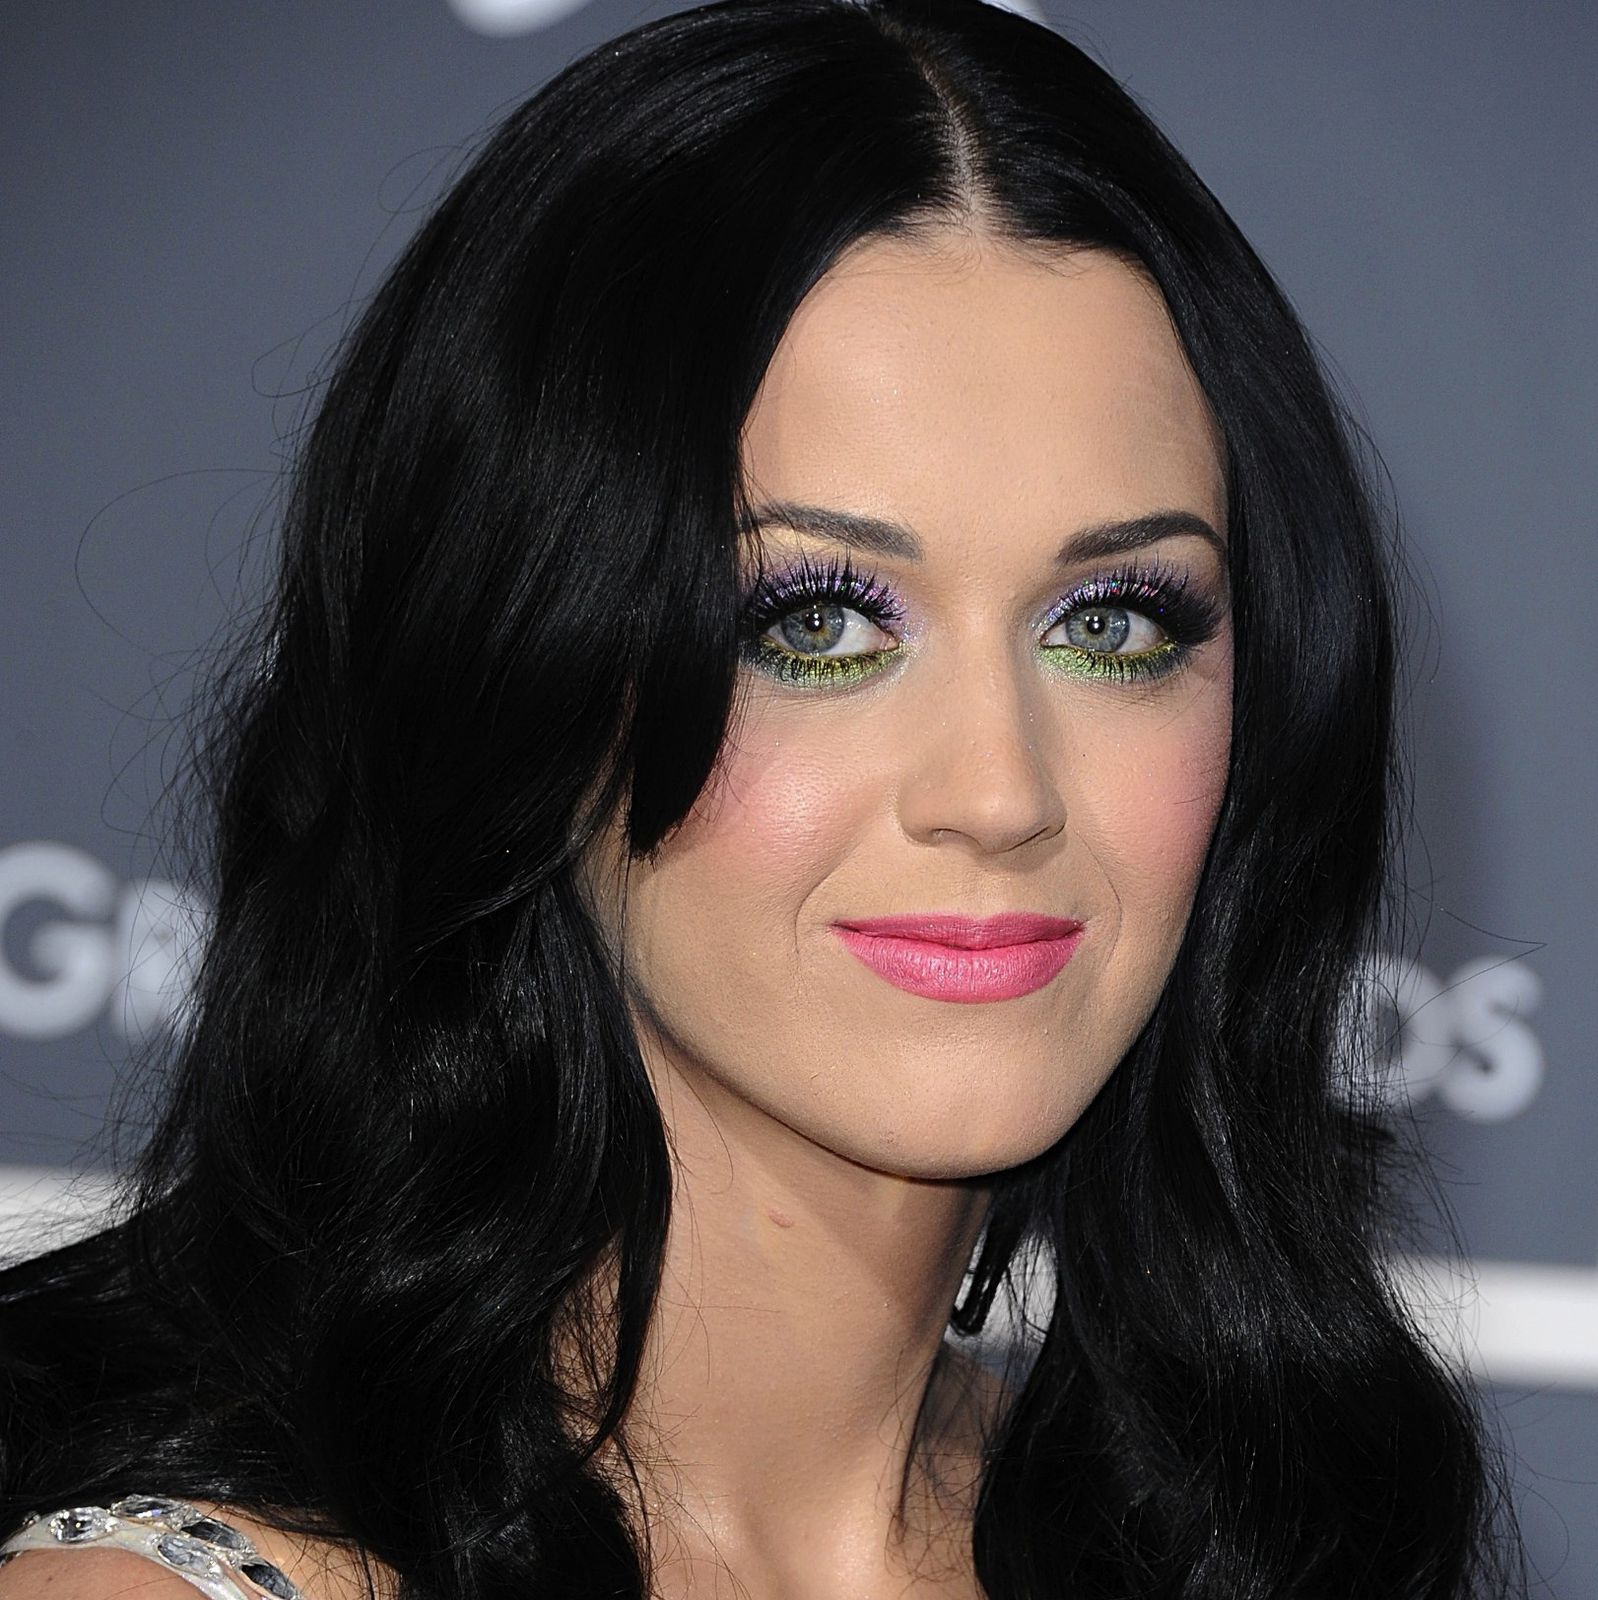 000_009_815_Katy_Perry_53rd_Annual_Grammy_Awards_13.02.2011.jpg